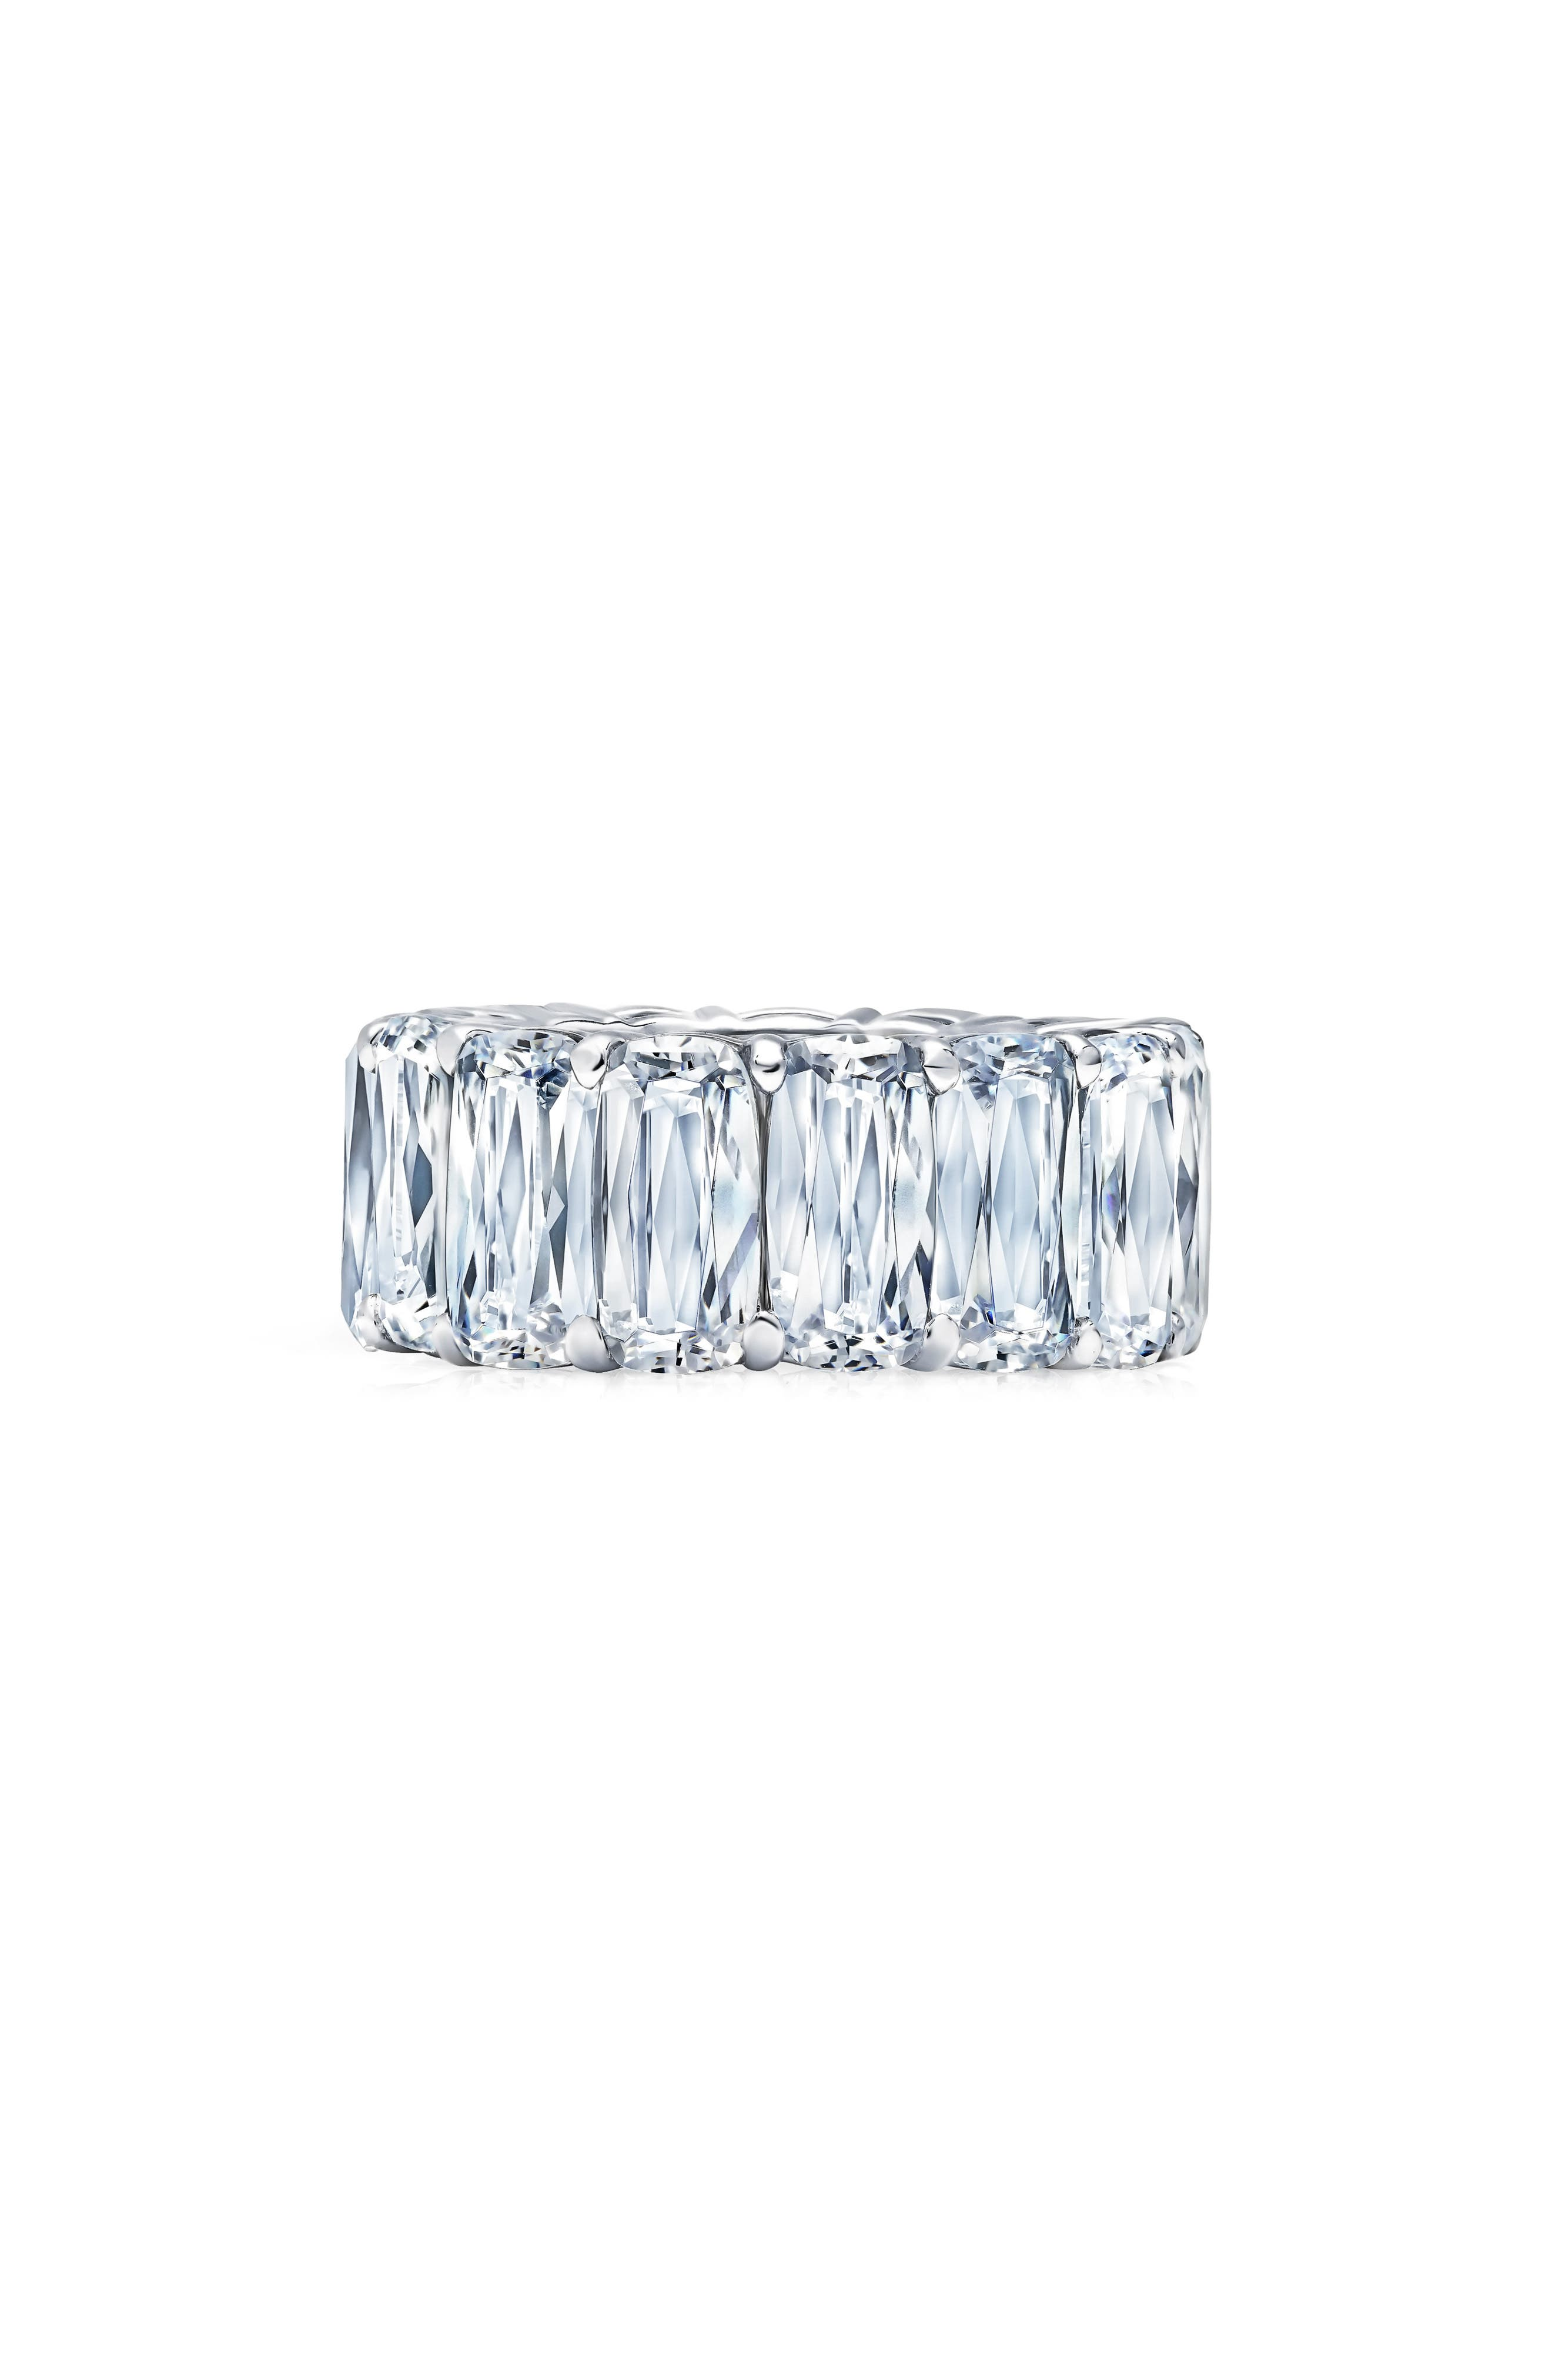 Oversized Eternity Band,                             Main thumbnail 1, color,                             SILVER/ CLEAR